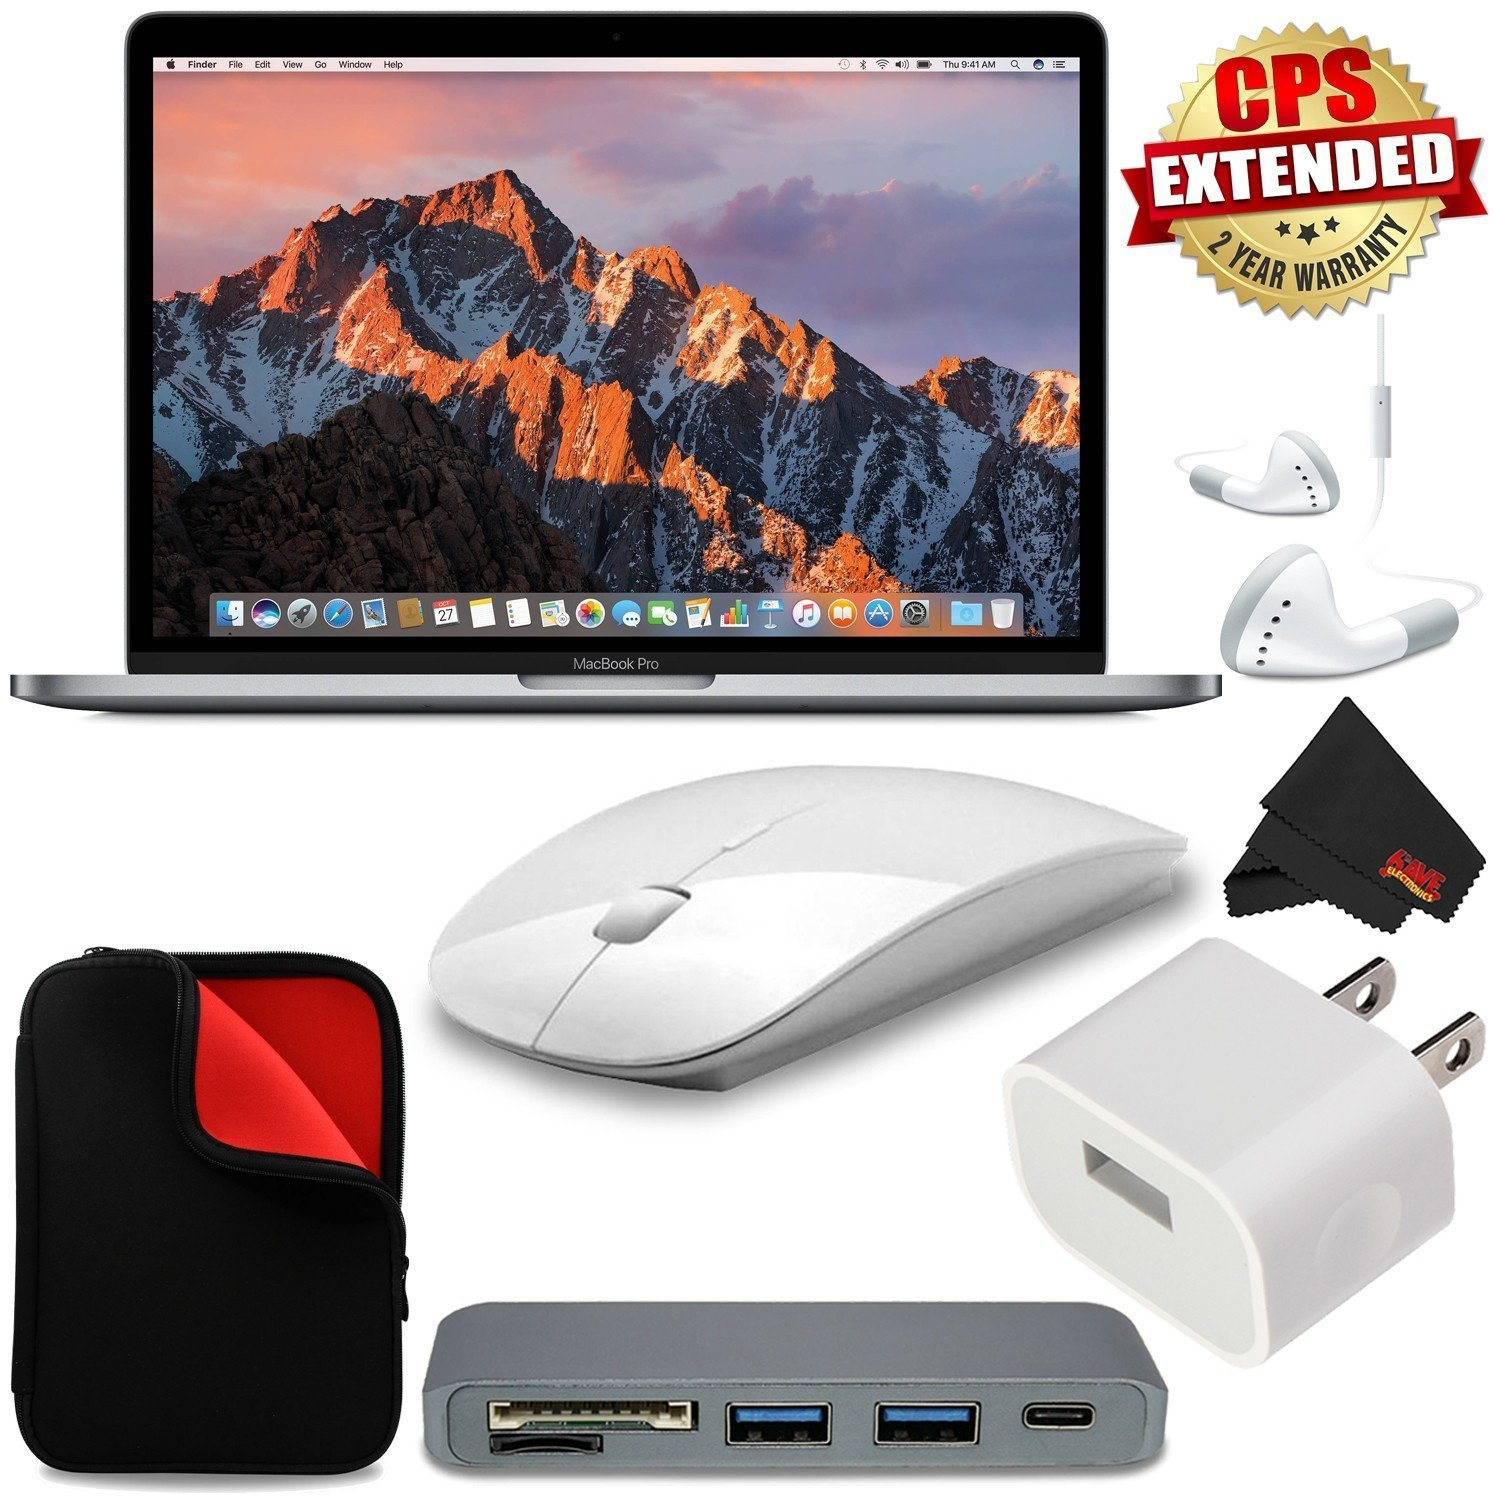 """Apple 13.3"""" MacBook Pro (Mid 2017, Space Gray) MPXT2LL/A + MicroFiber Cloth + 2.4 GHz Slim Optical Wireless Bluetooth + Travel USB 5V Wall Charger for iPhone/iPad (White) + Type-C USB 3.0 HUB Bundle"""